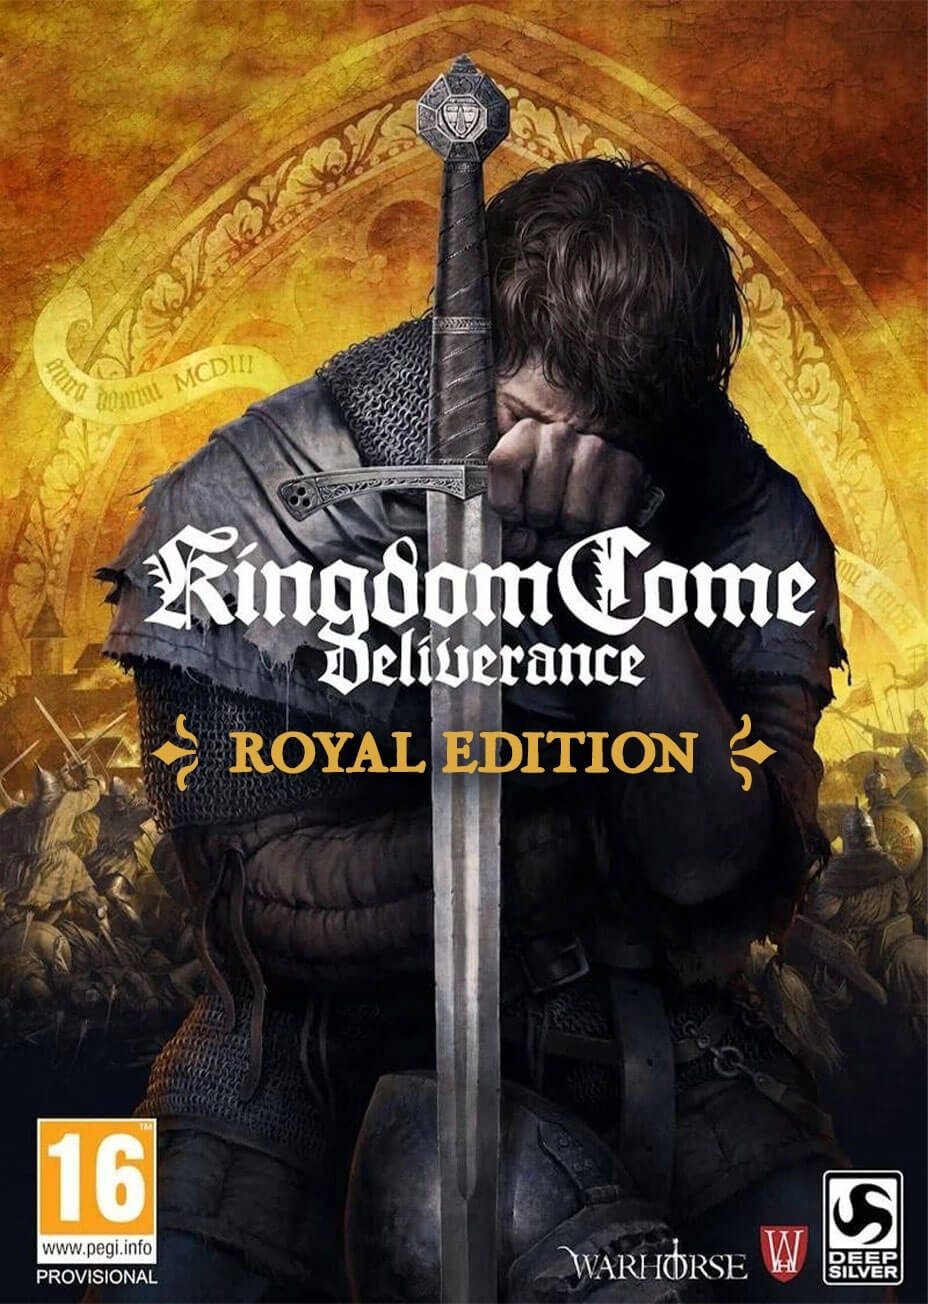 https://img5.downloadha.com/hosein/files/2019/05/Kingdom-Come-Deliverance-Royal-Edition-pc-cover-large.jpg